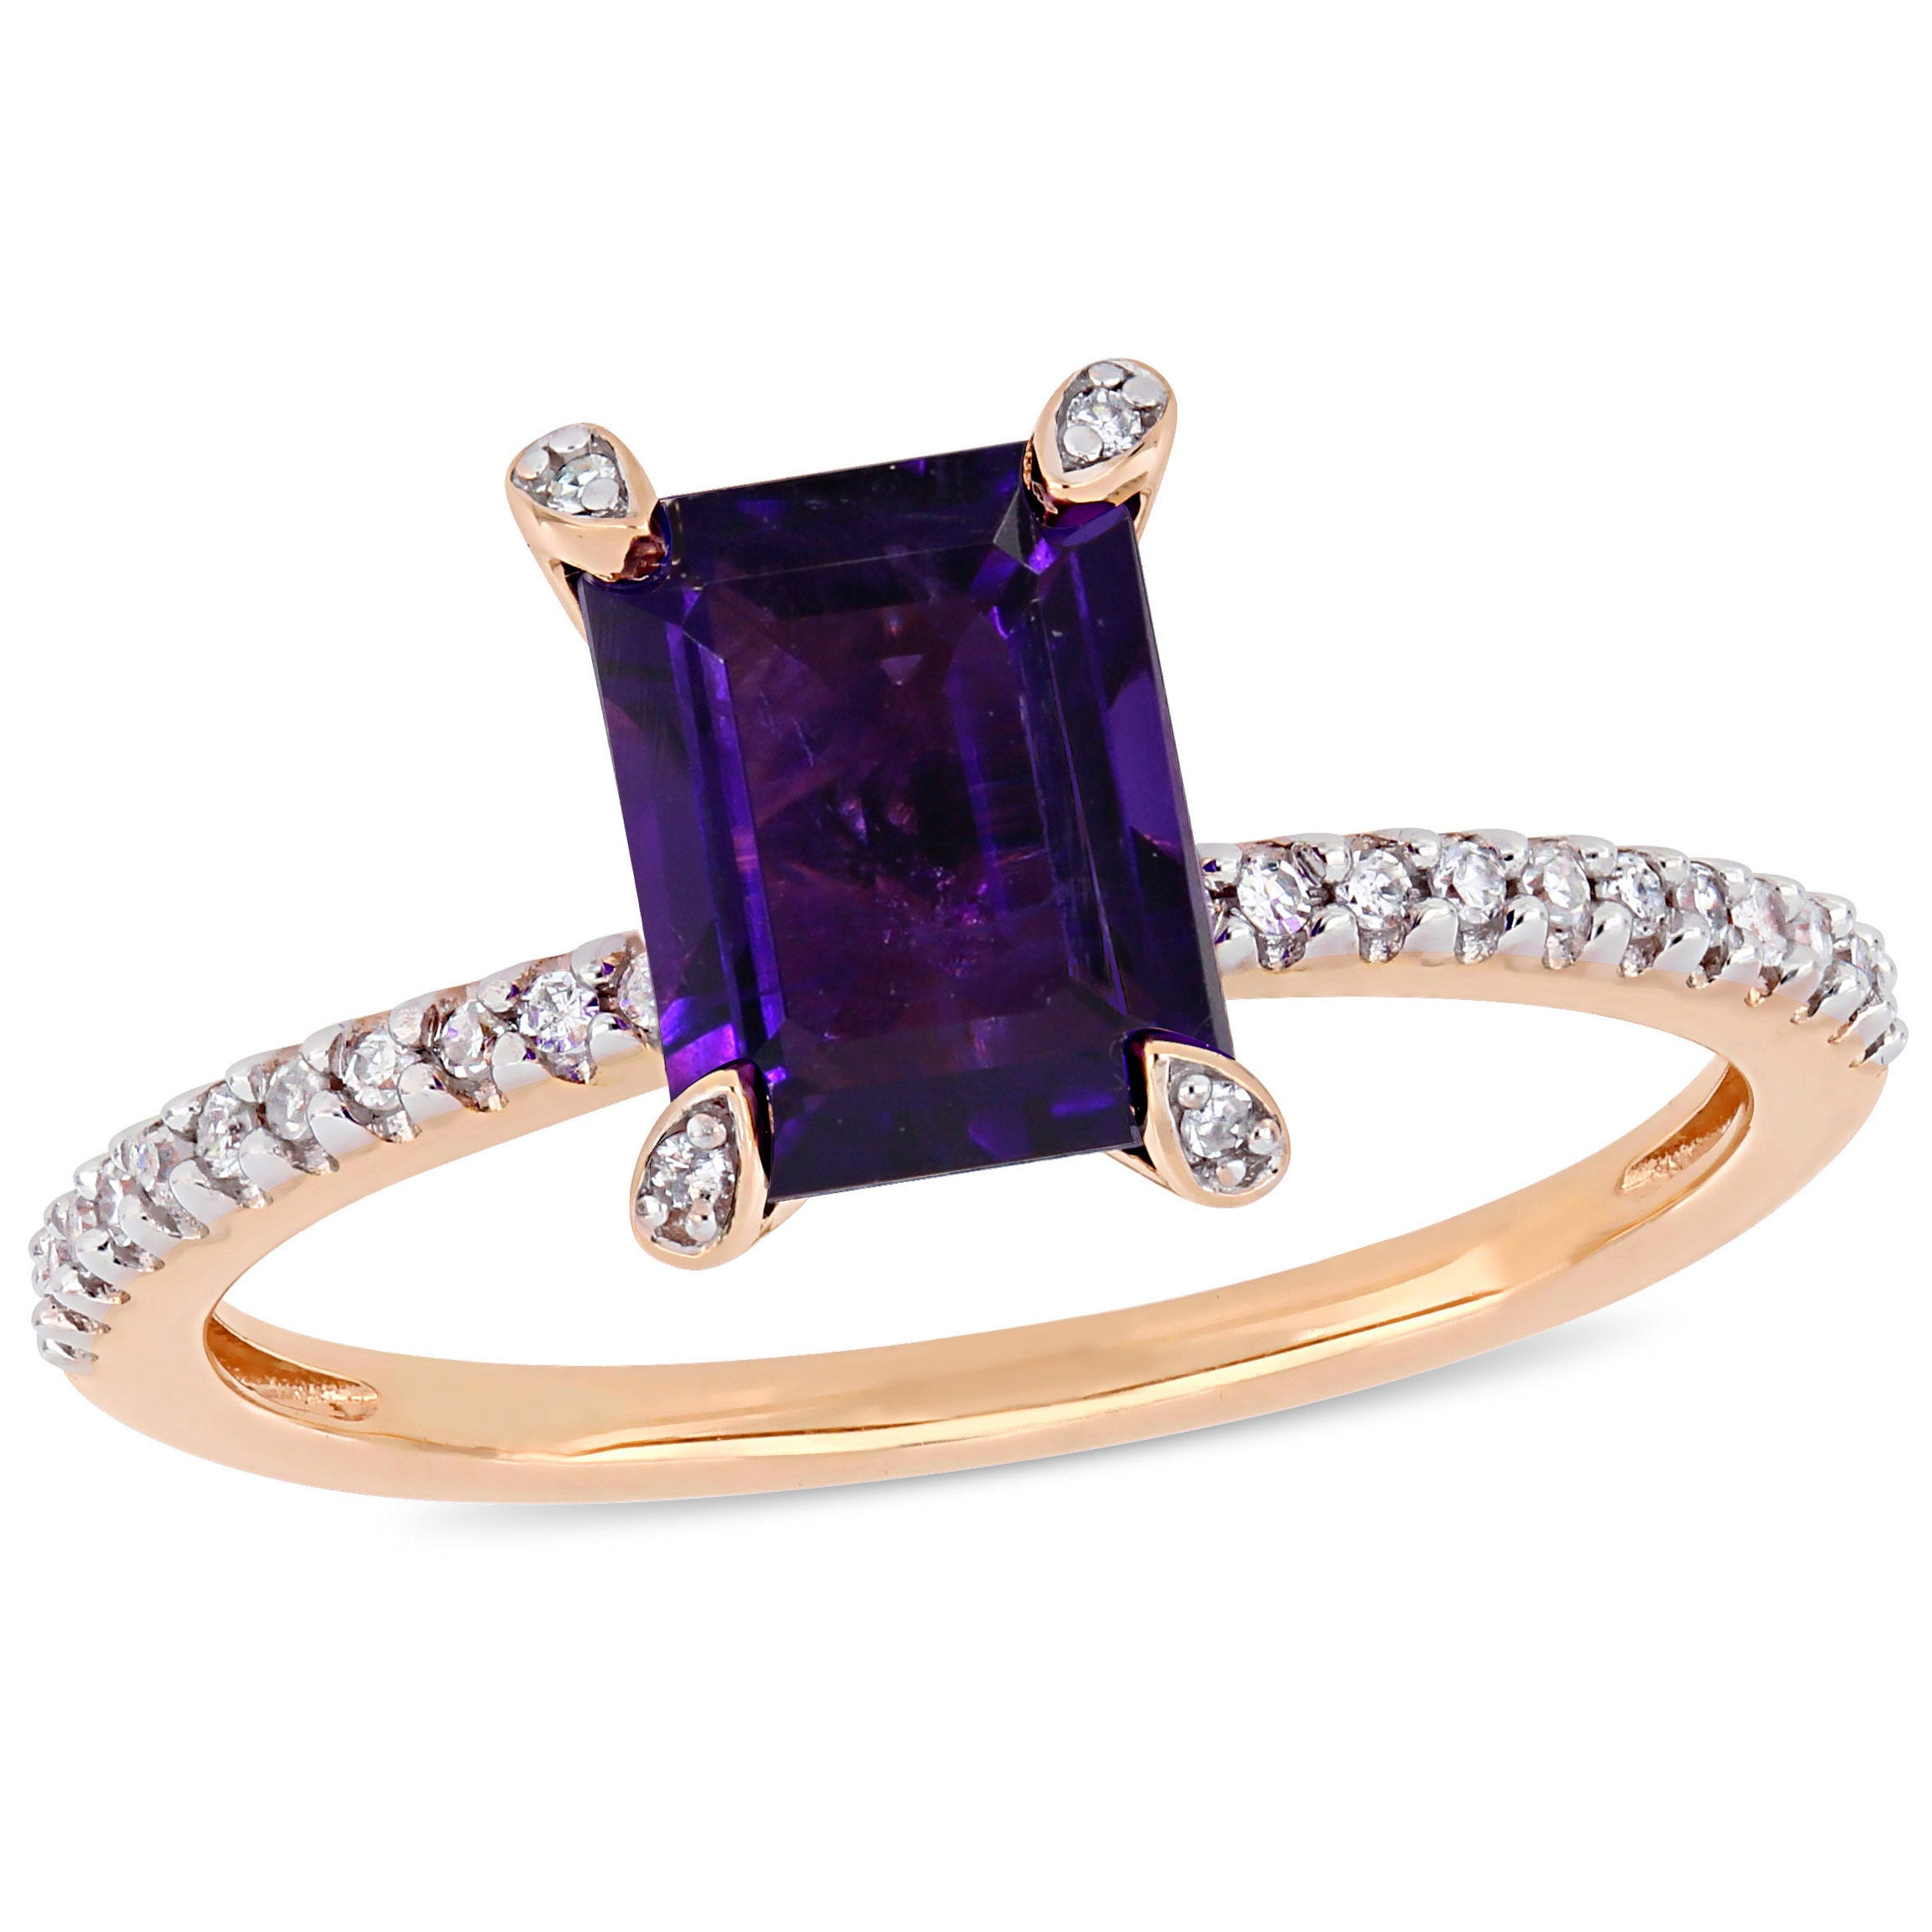 Emerald-Cut Amethyst Solitaire Engagement Ring in 10k Rose Gold